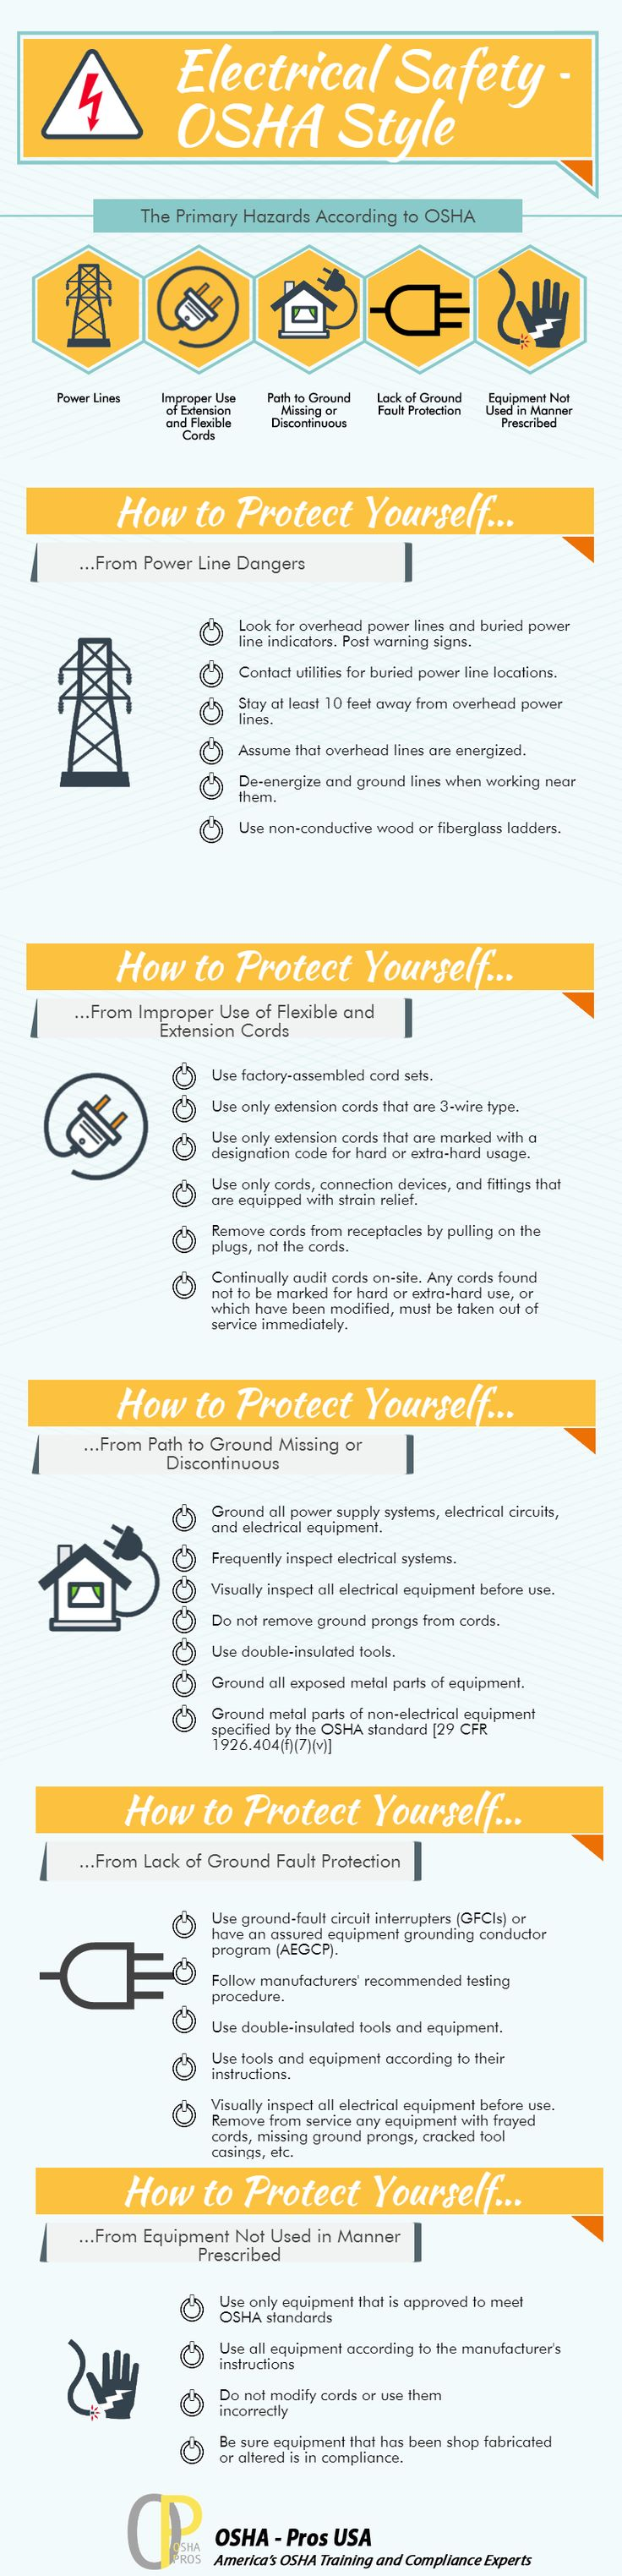 best images about health safety construction osha identifies 5 major electrical safety hazards out what they are and how to avoid them our safety training infographic osha pros